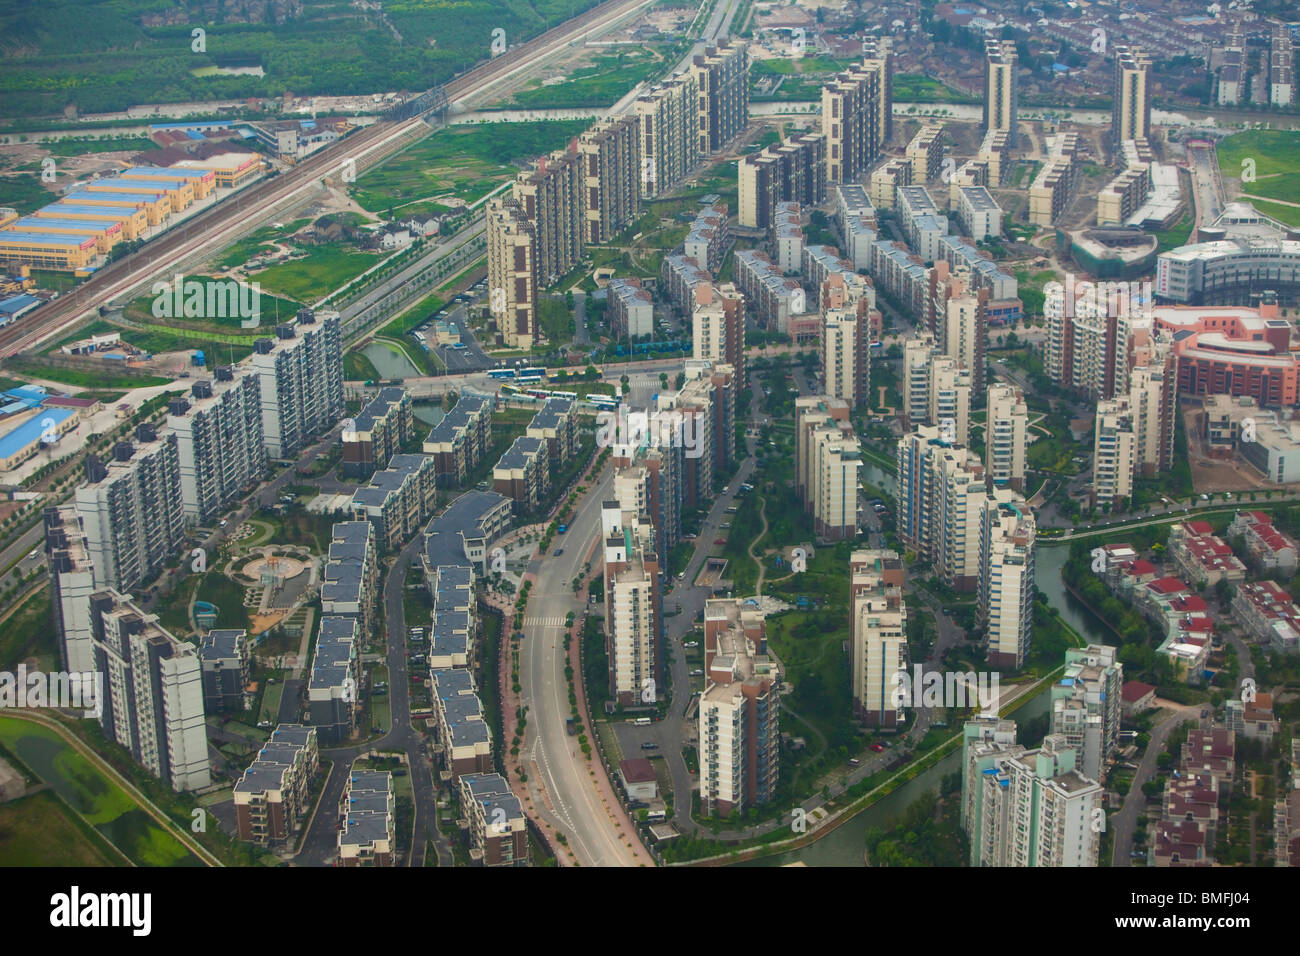 Aerial view of large residential complexes, Shanghai, China - Stock Image